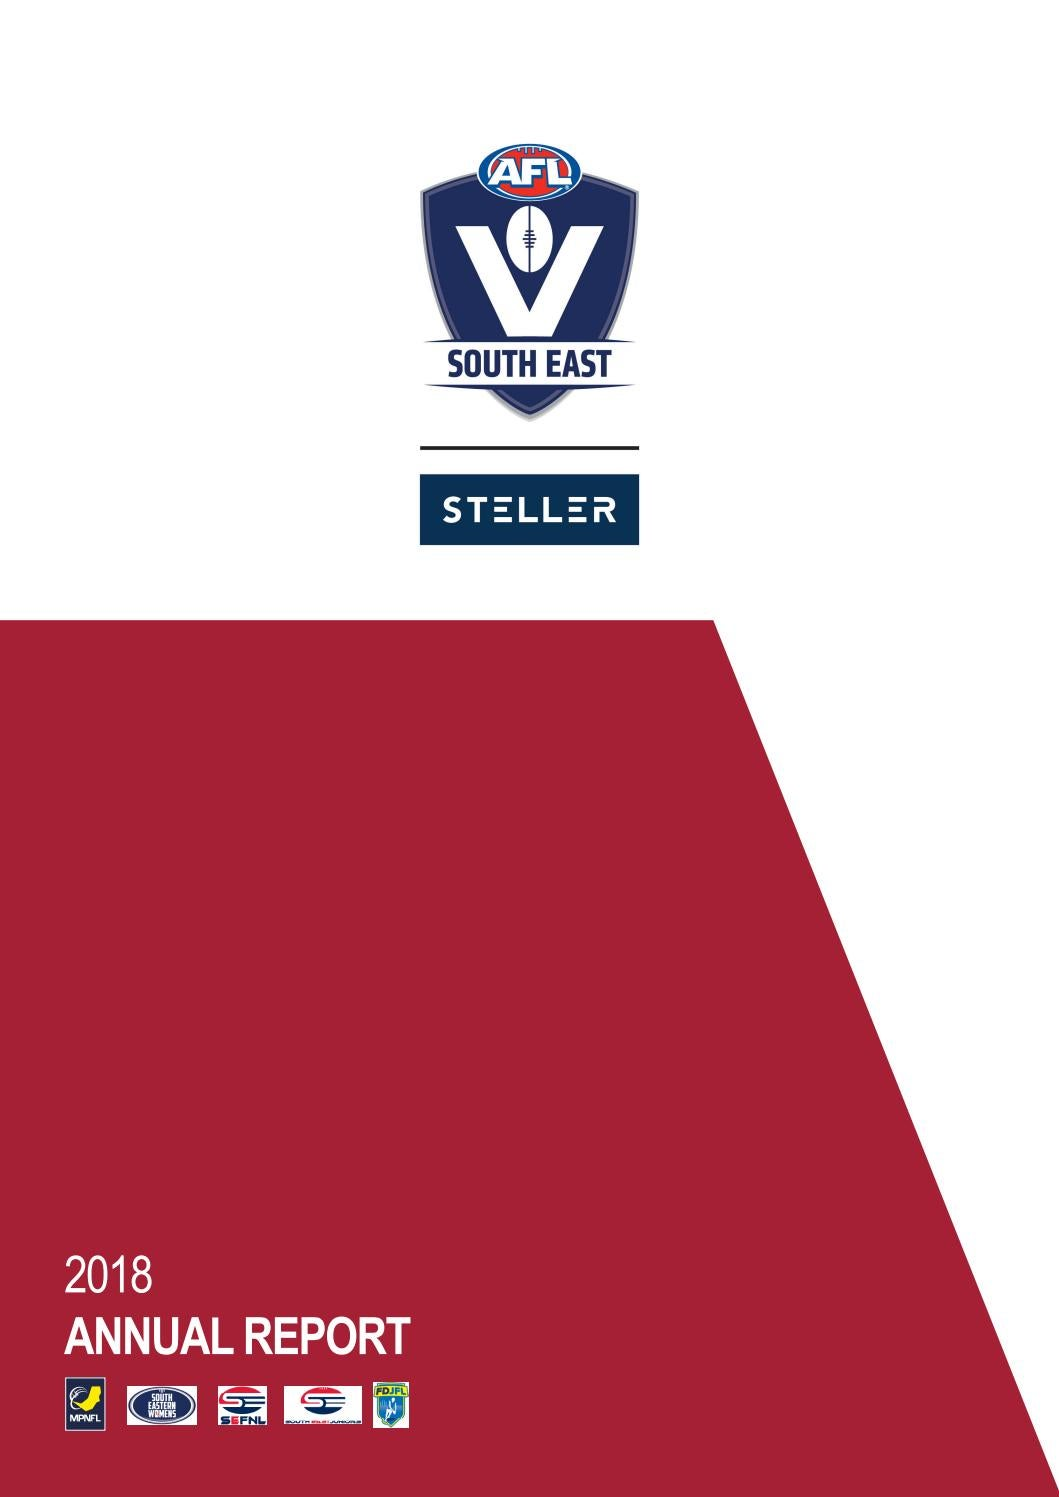 Afl South East Annual Report 2018 By Issuu